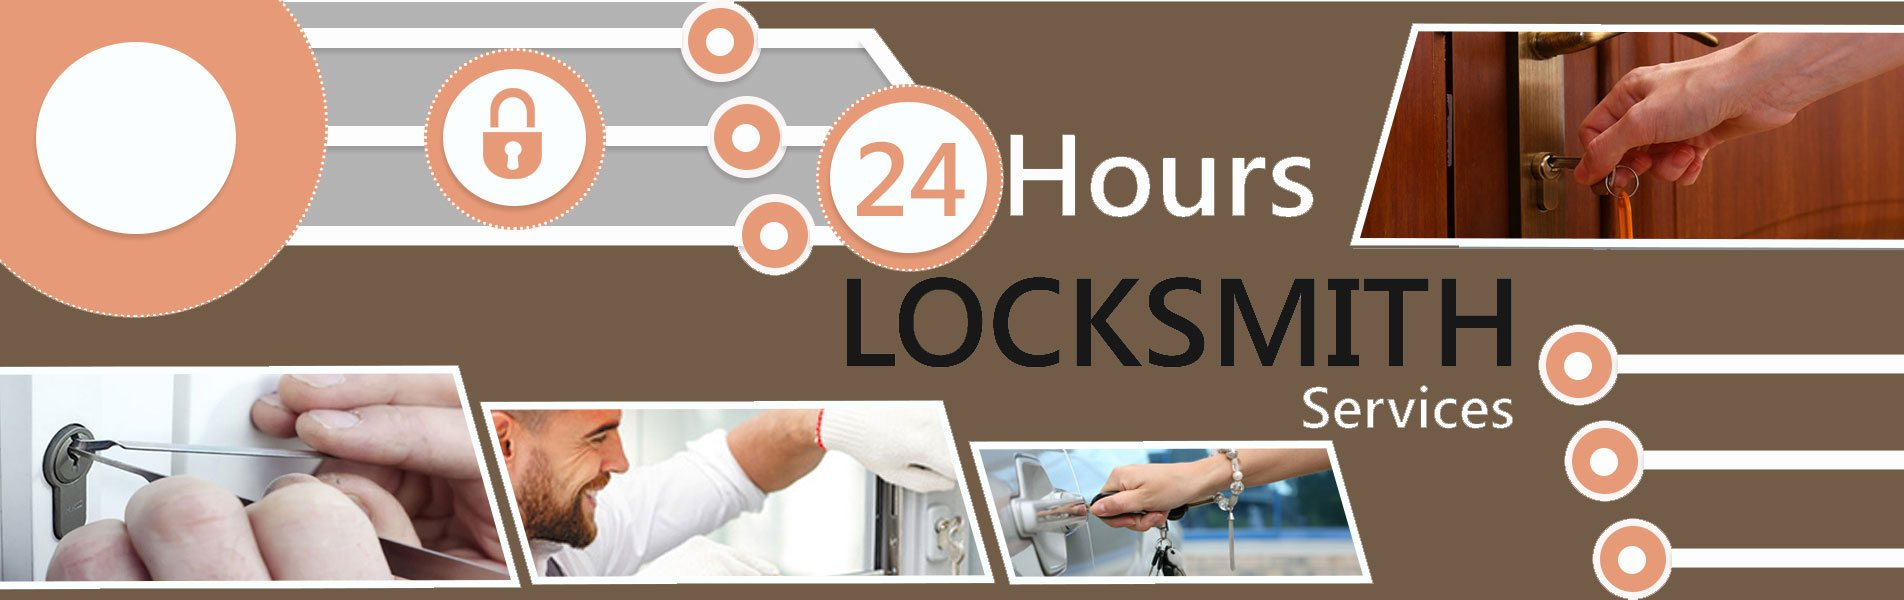 Atlanta Advantage Locksmith, Atlanta, GA 404-965-1120